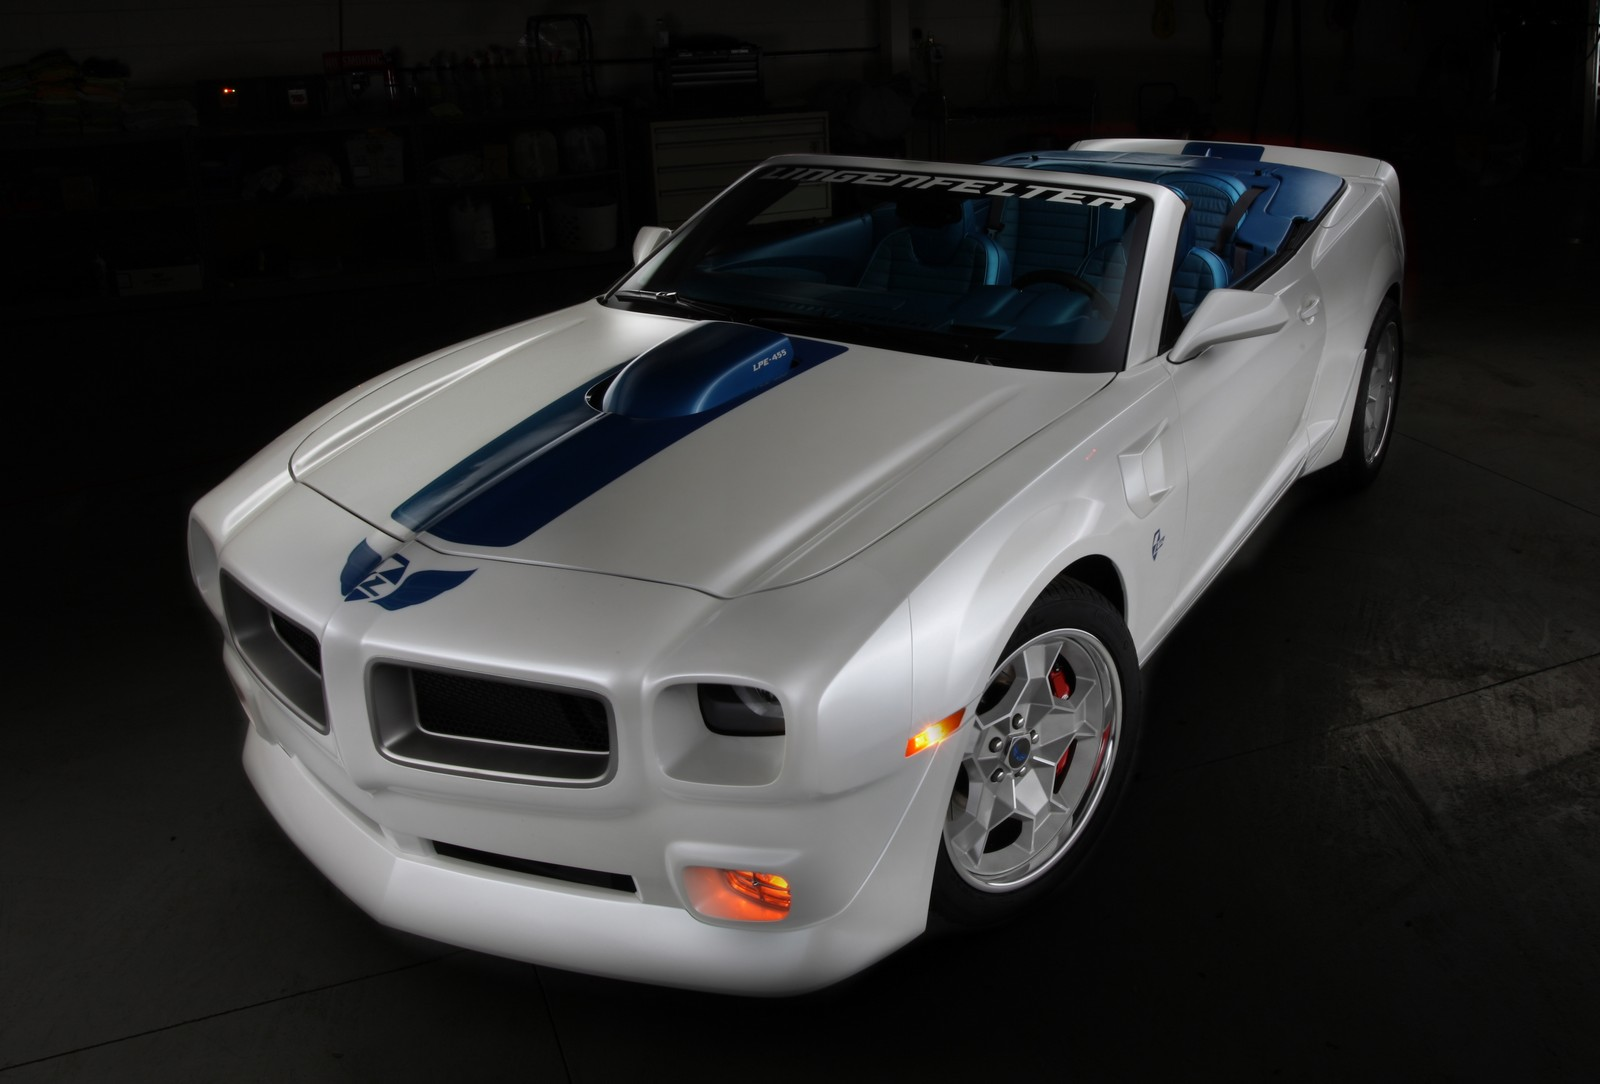 Lingenfelters Production Pontiac Trans Am Inspired LTA